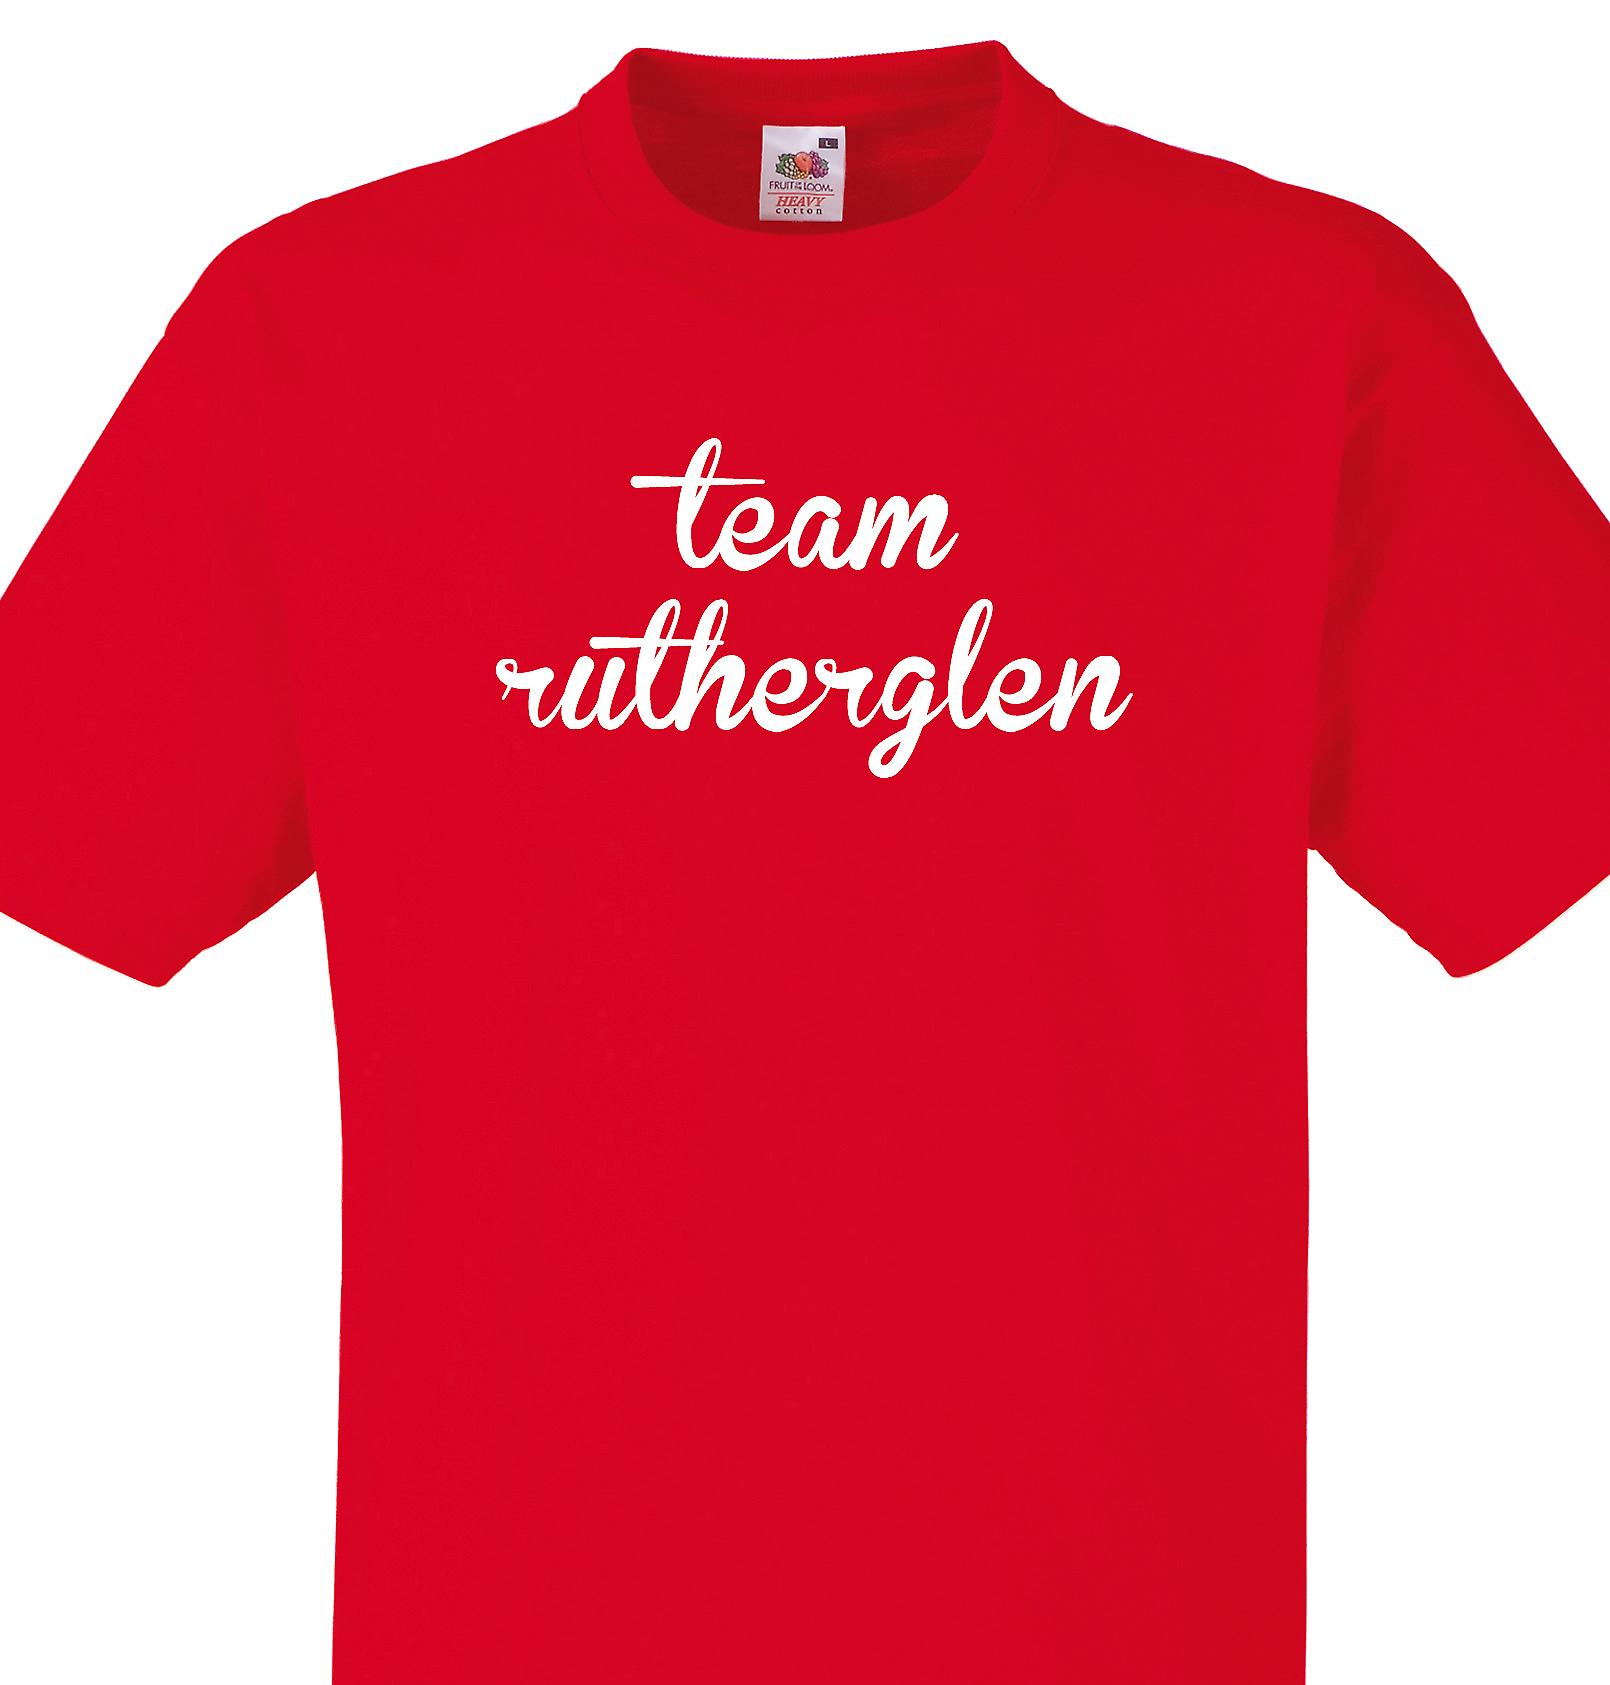 Team Rutherglen Red T shirt